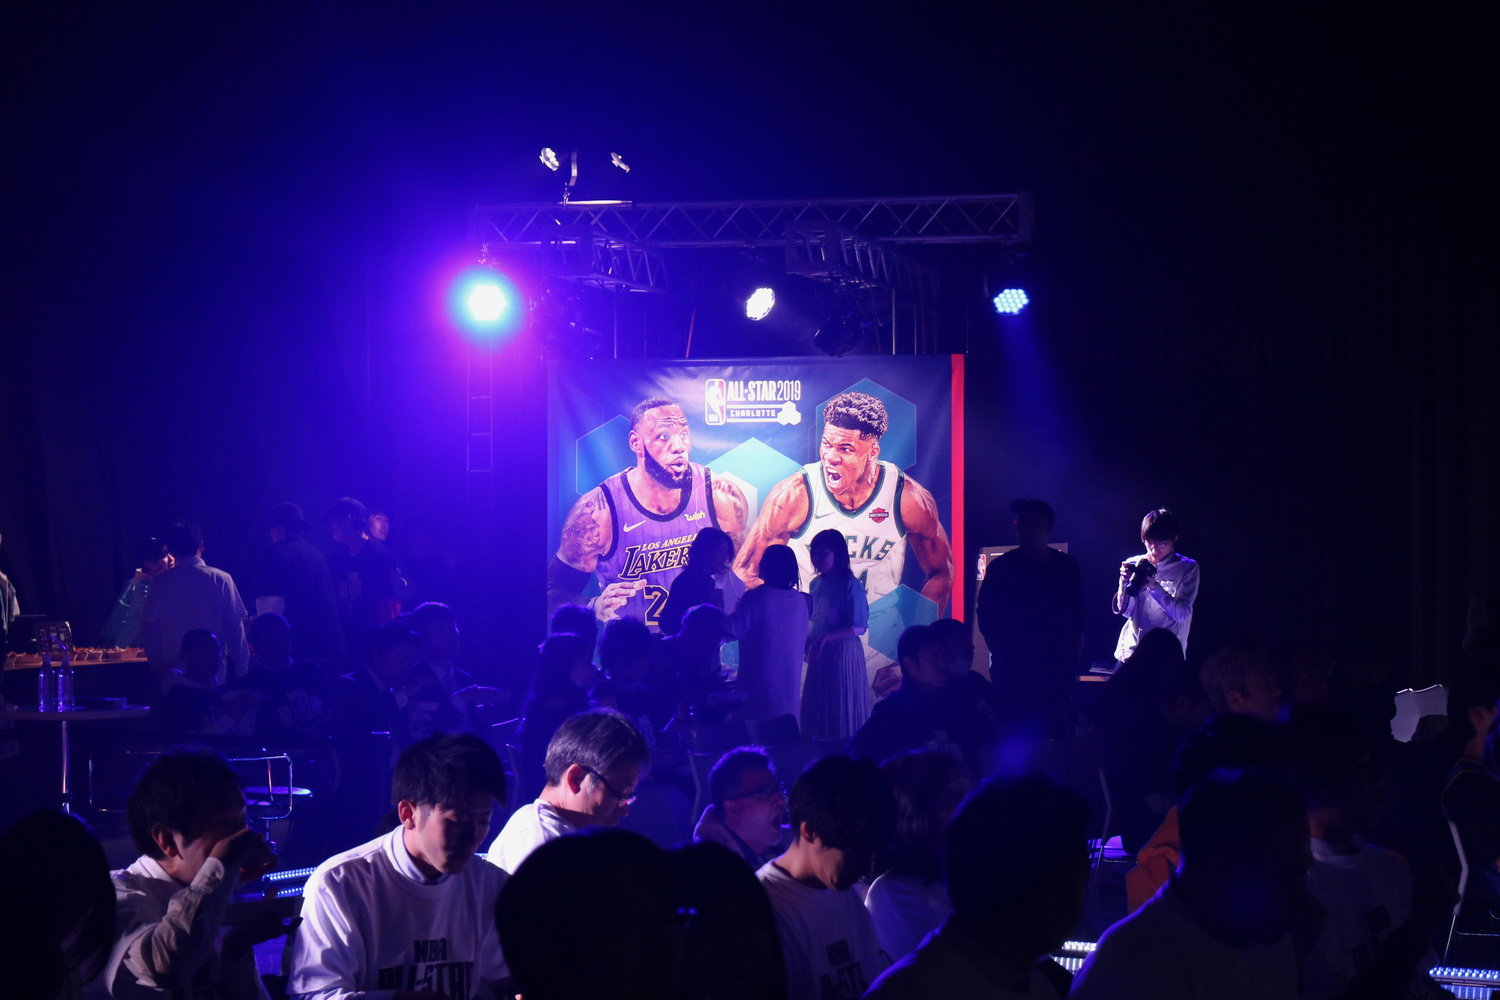 On February 18, NBA fans gathered at a studio under the iconic Tokyo Tower to take in the year's biggest basketball spectacle, presented by Rakuten TV.